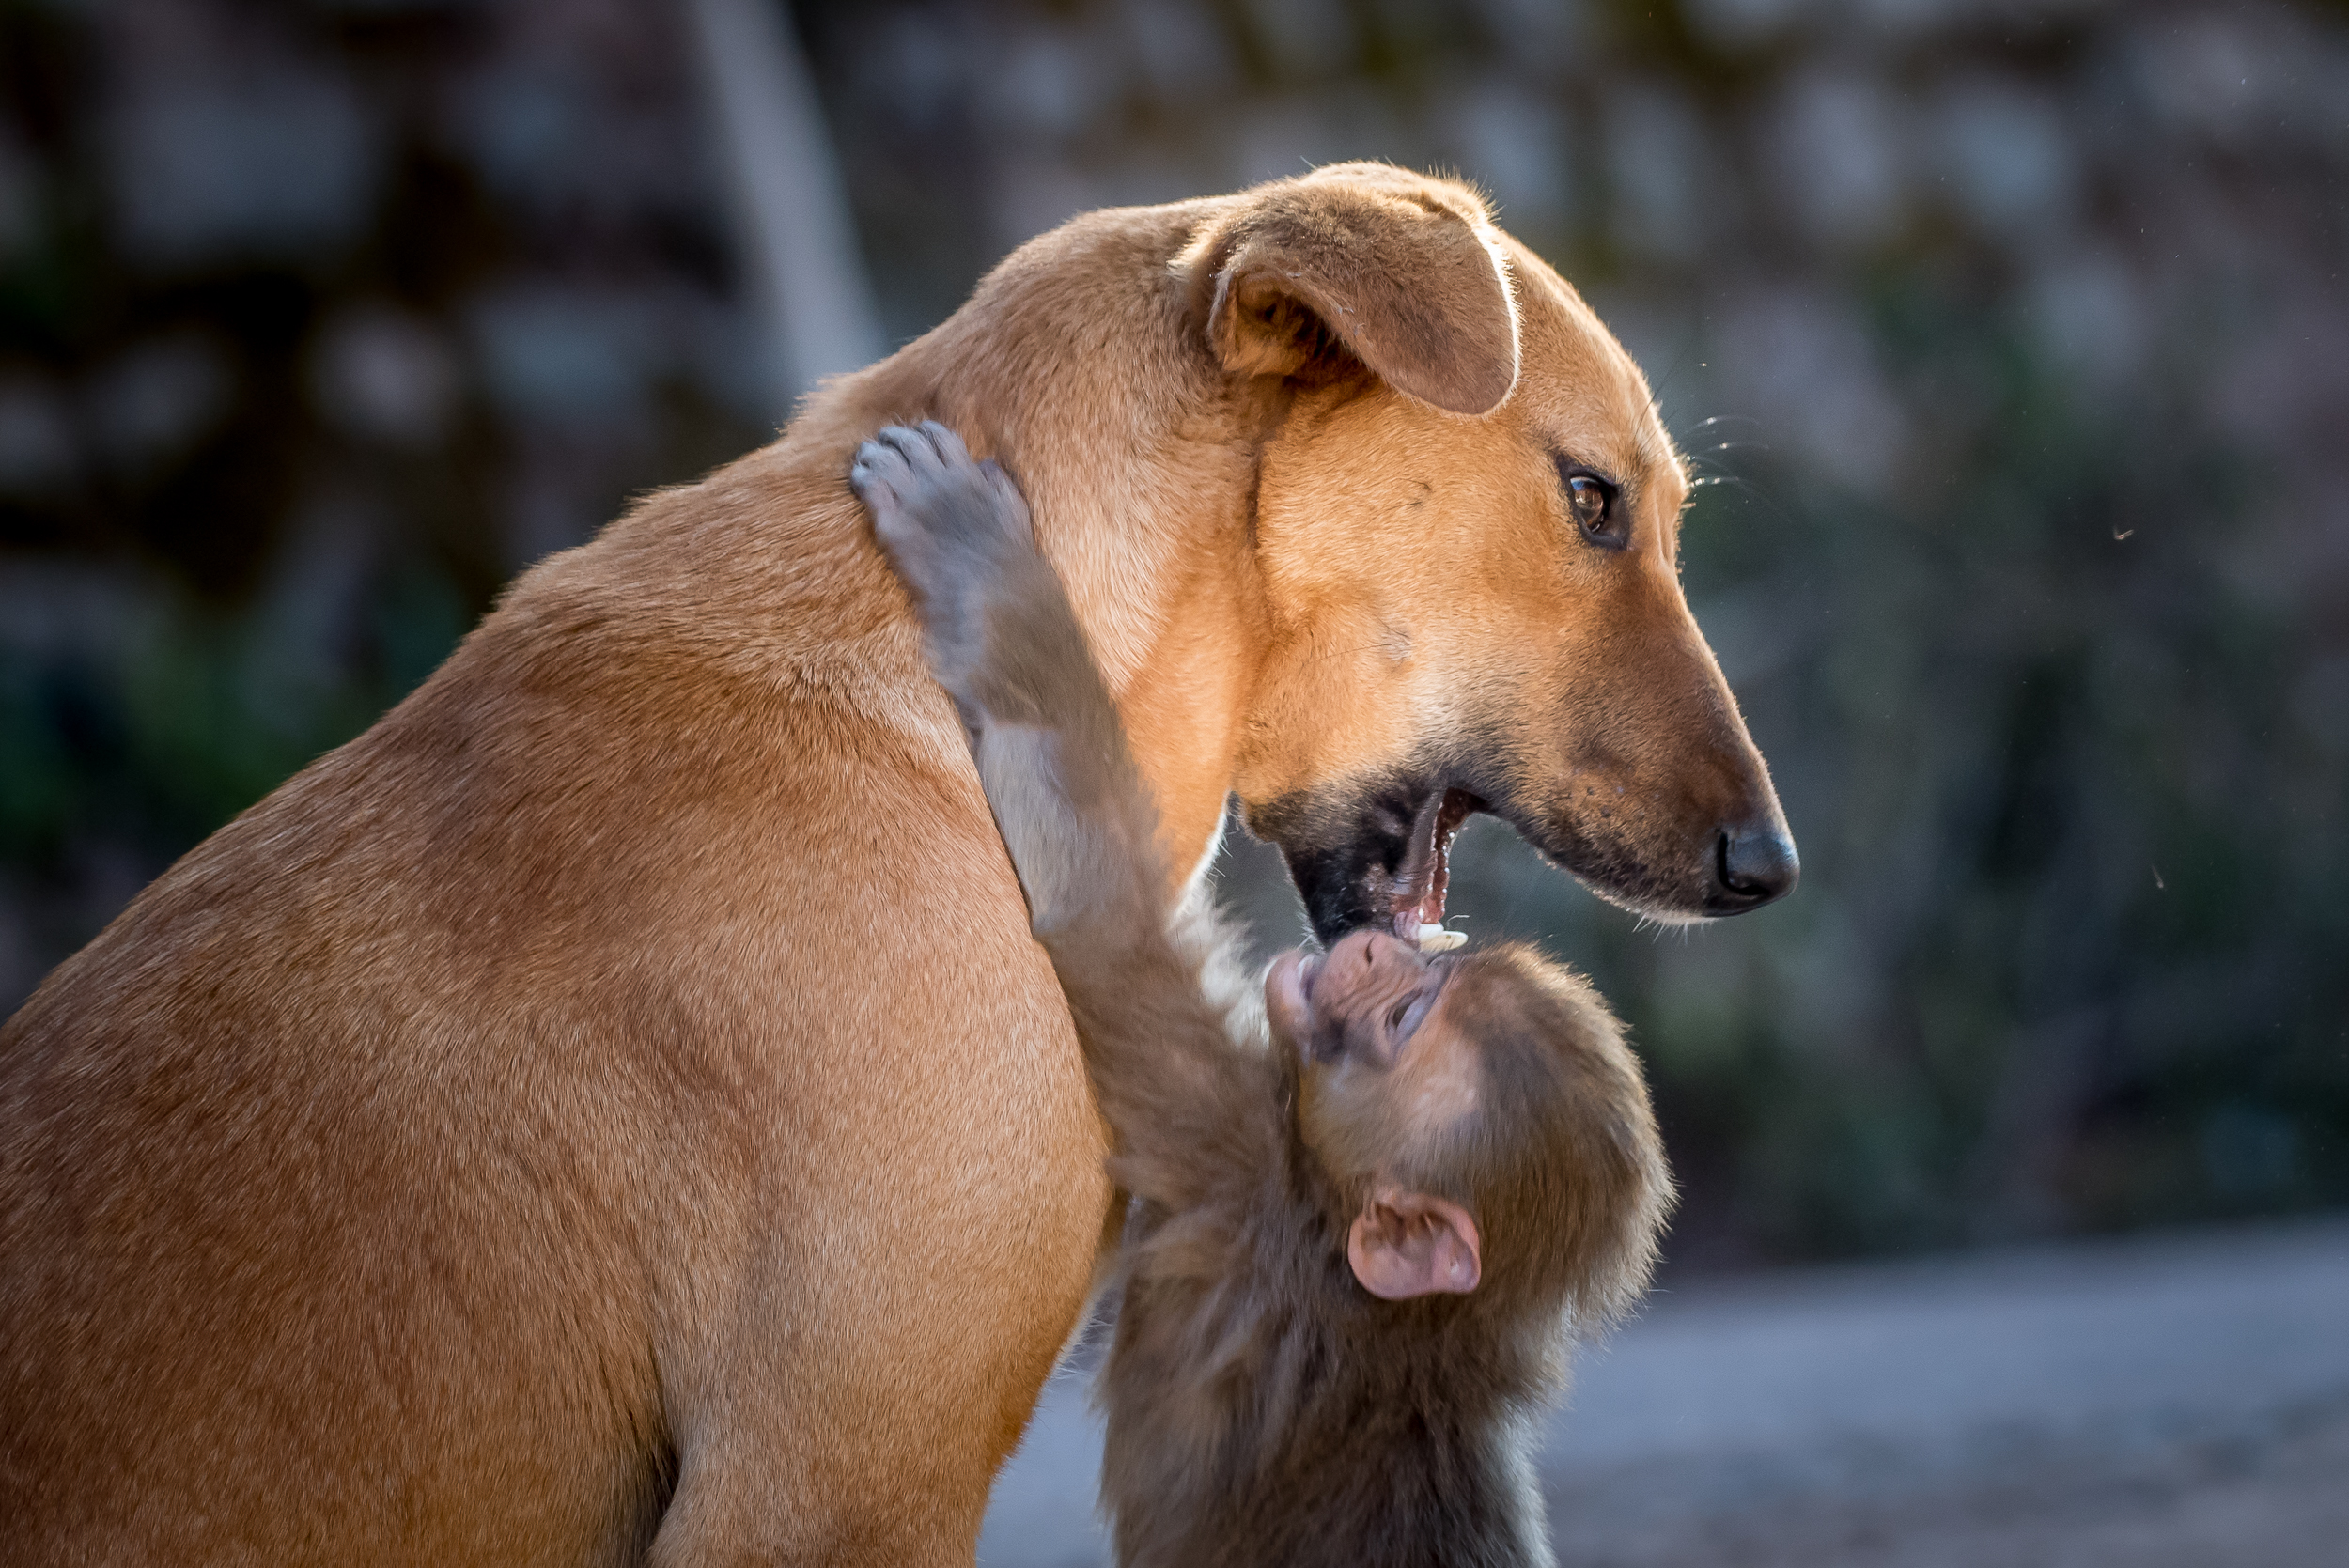 Dog with Infant